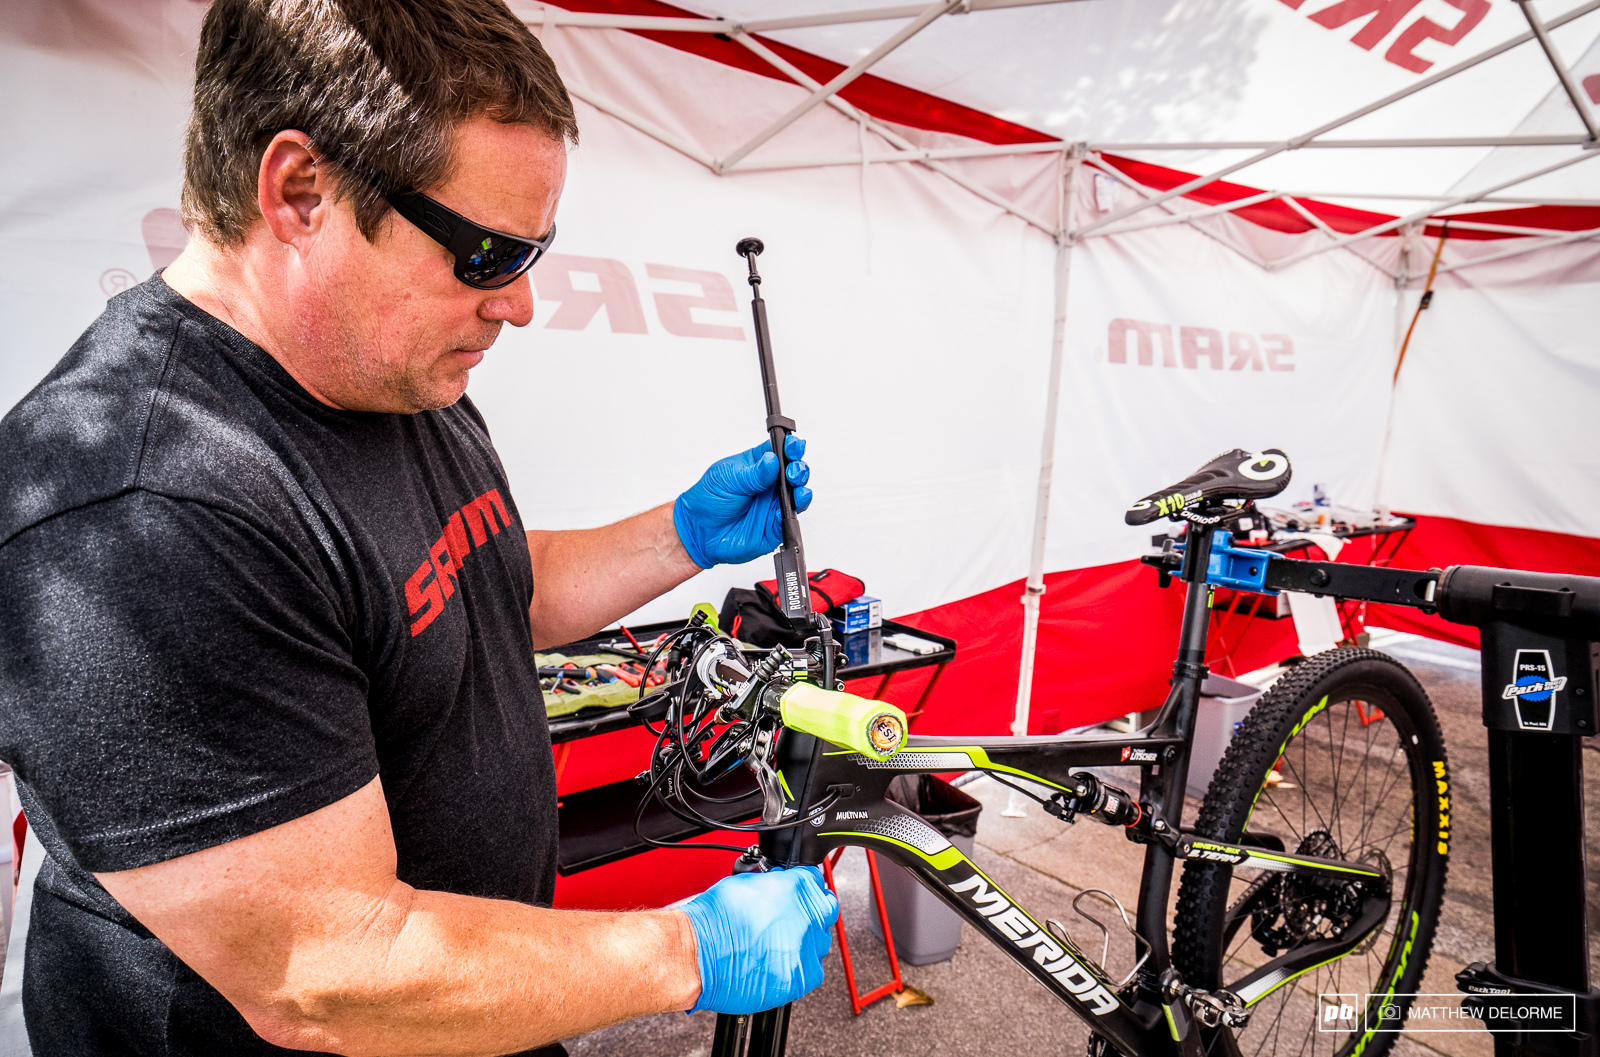 The SRAM boys were working full tilt to keep riders bikes in top shape.